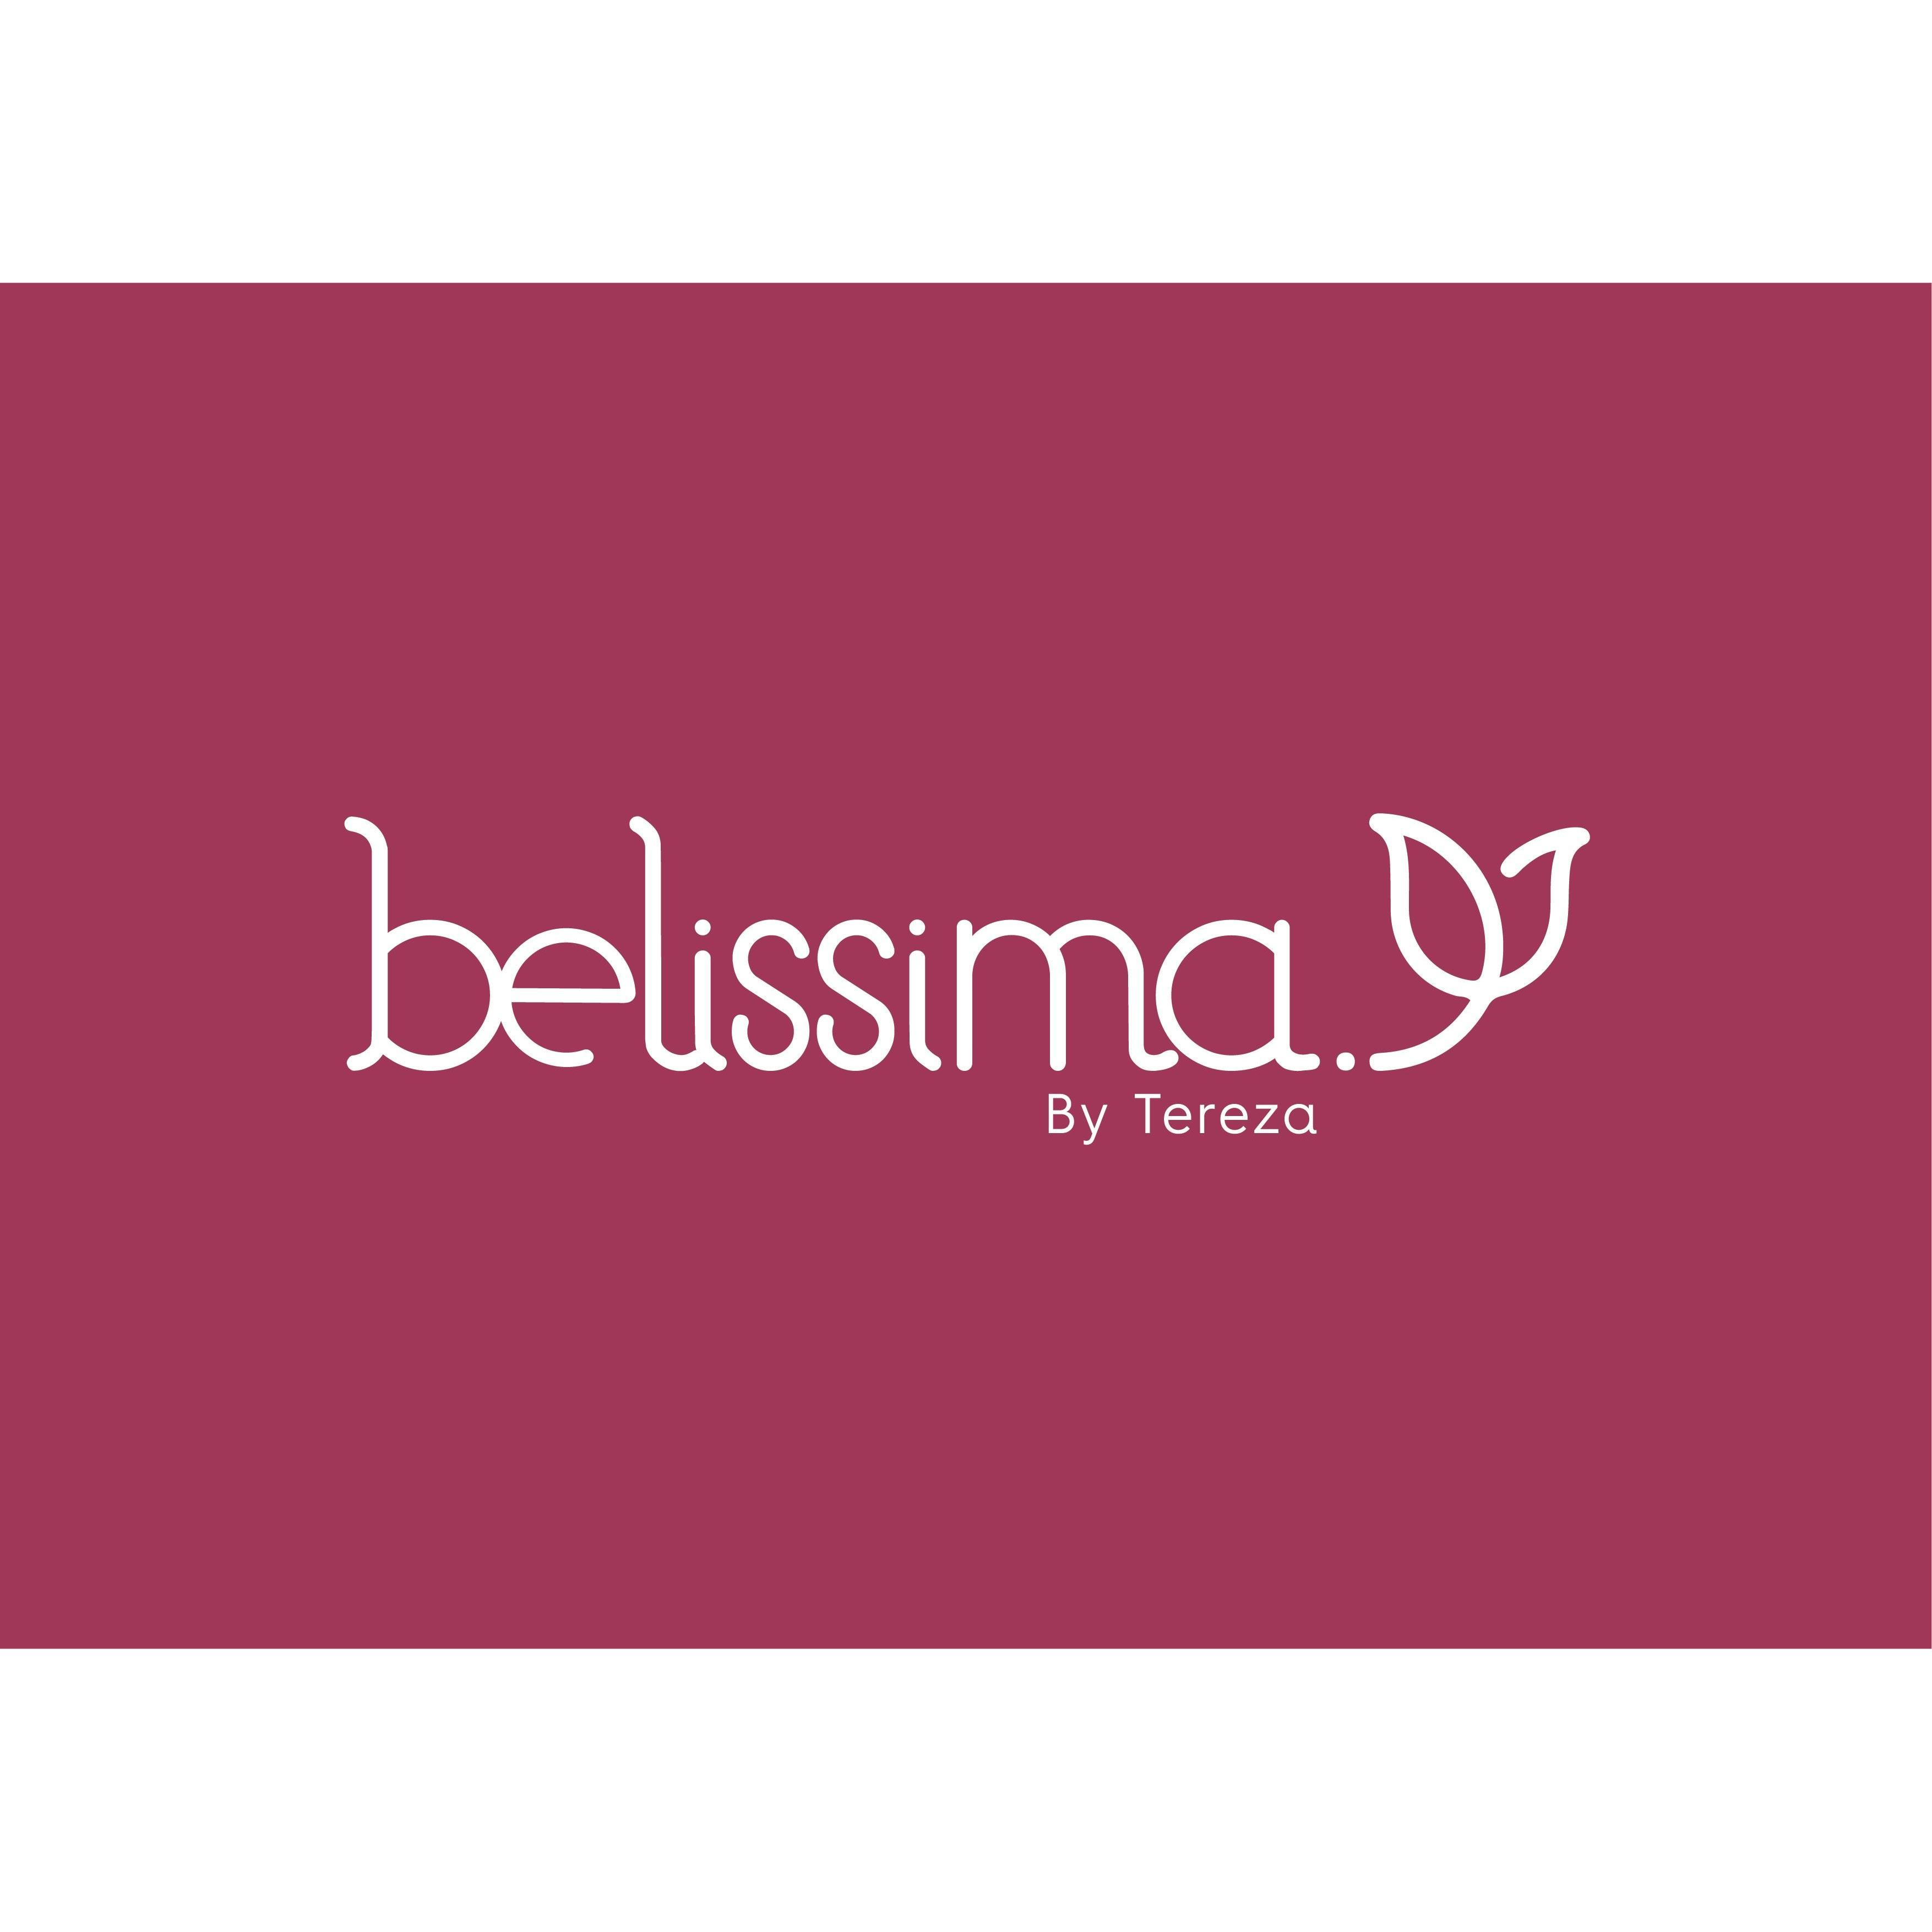 Belissima by Tereza